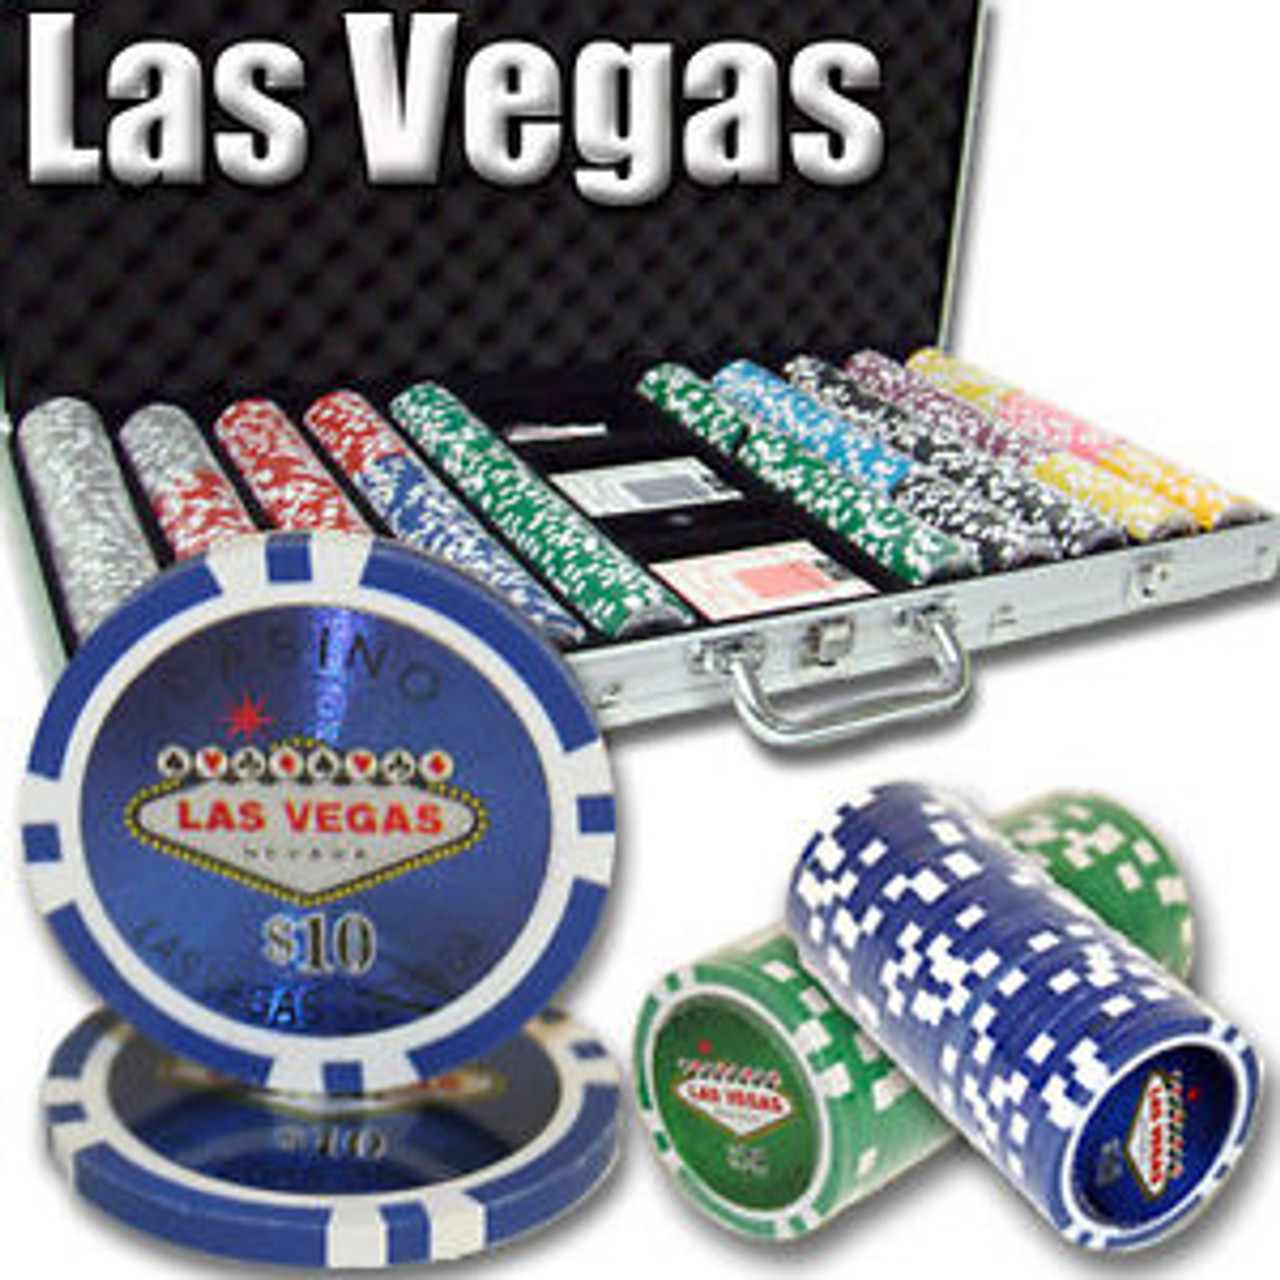 Las Vegas Casino 11.5g Poker Chip 500 pc Set with Case & FREE OFFER